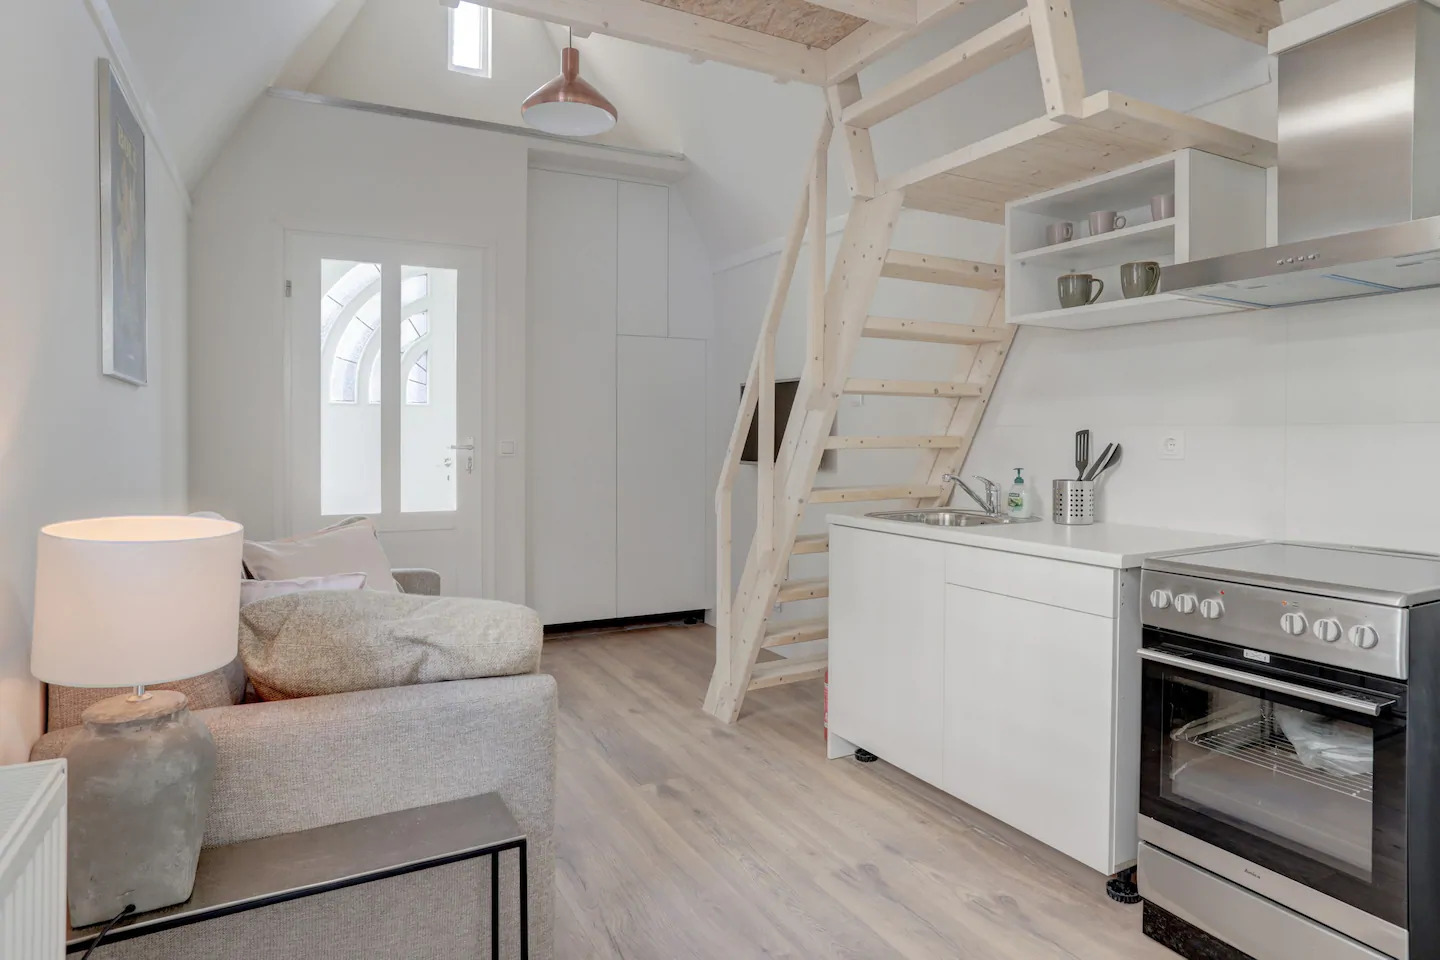 Airbnb Tiny House in Amsterdam